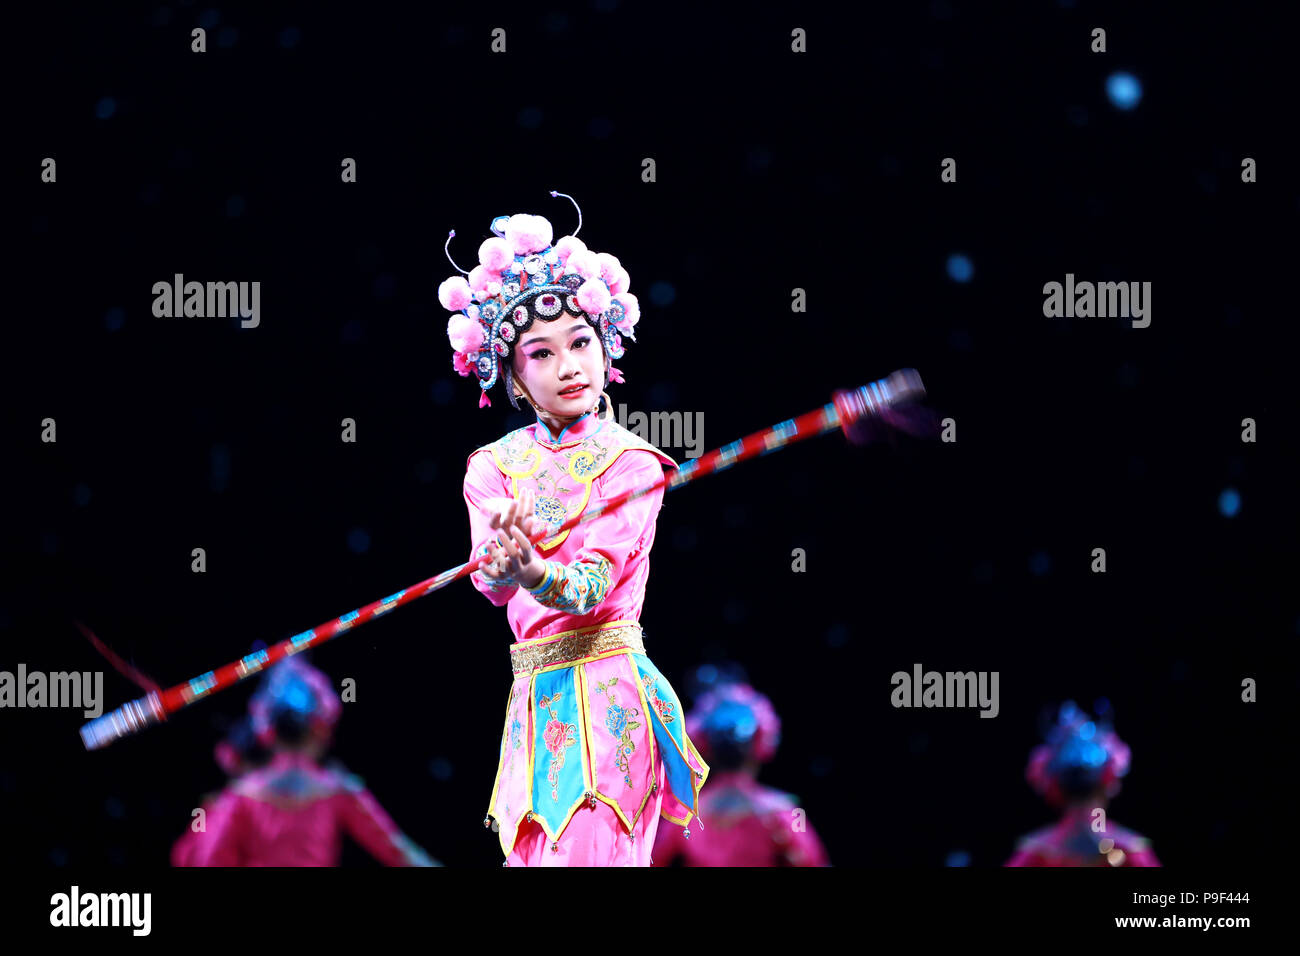 (180718) --BEIJING, July 18, 2018 (Xinhua) -- Child actors dance during a dance exhibition at Tianqiao Performing Arts Center in Beijing, capital of China, July 17, 2018. The dance exhibition co-hosted by China Federation of Literary and Art Circles and Chinese Dancers Association was held here from July 17 to 18. (Xinhua/Pan Xu) (hxy) - Stock Image